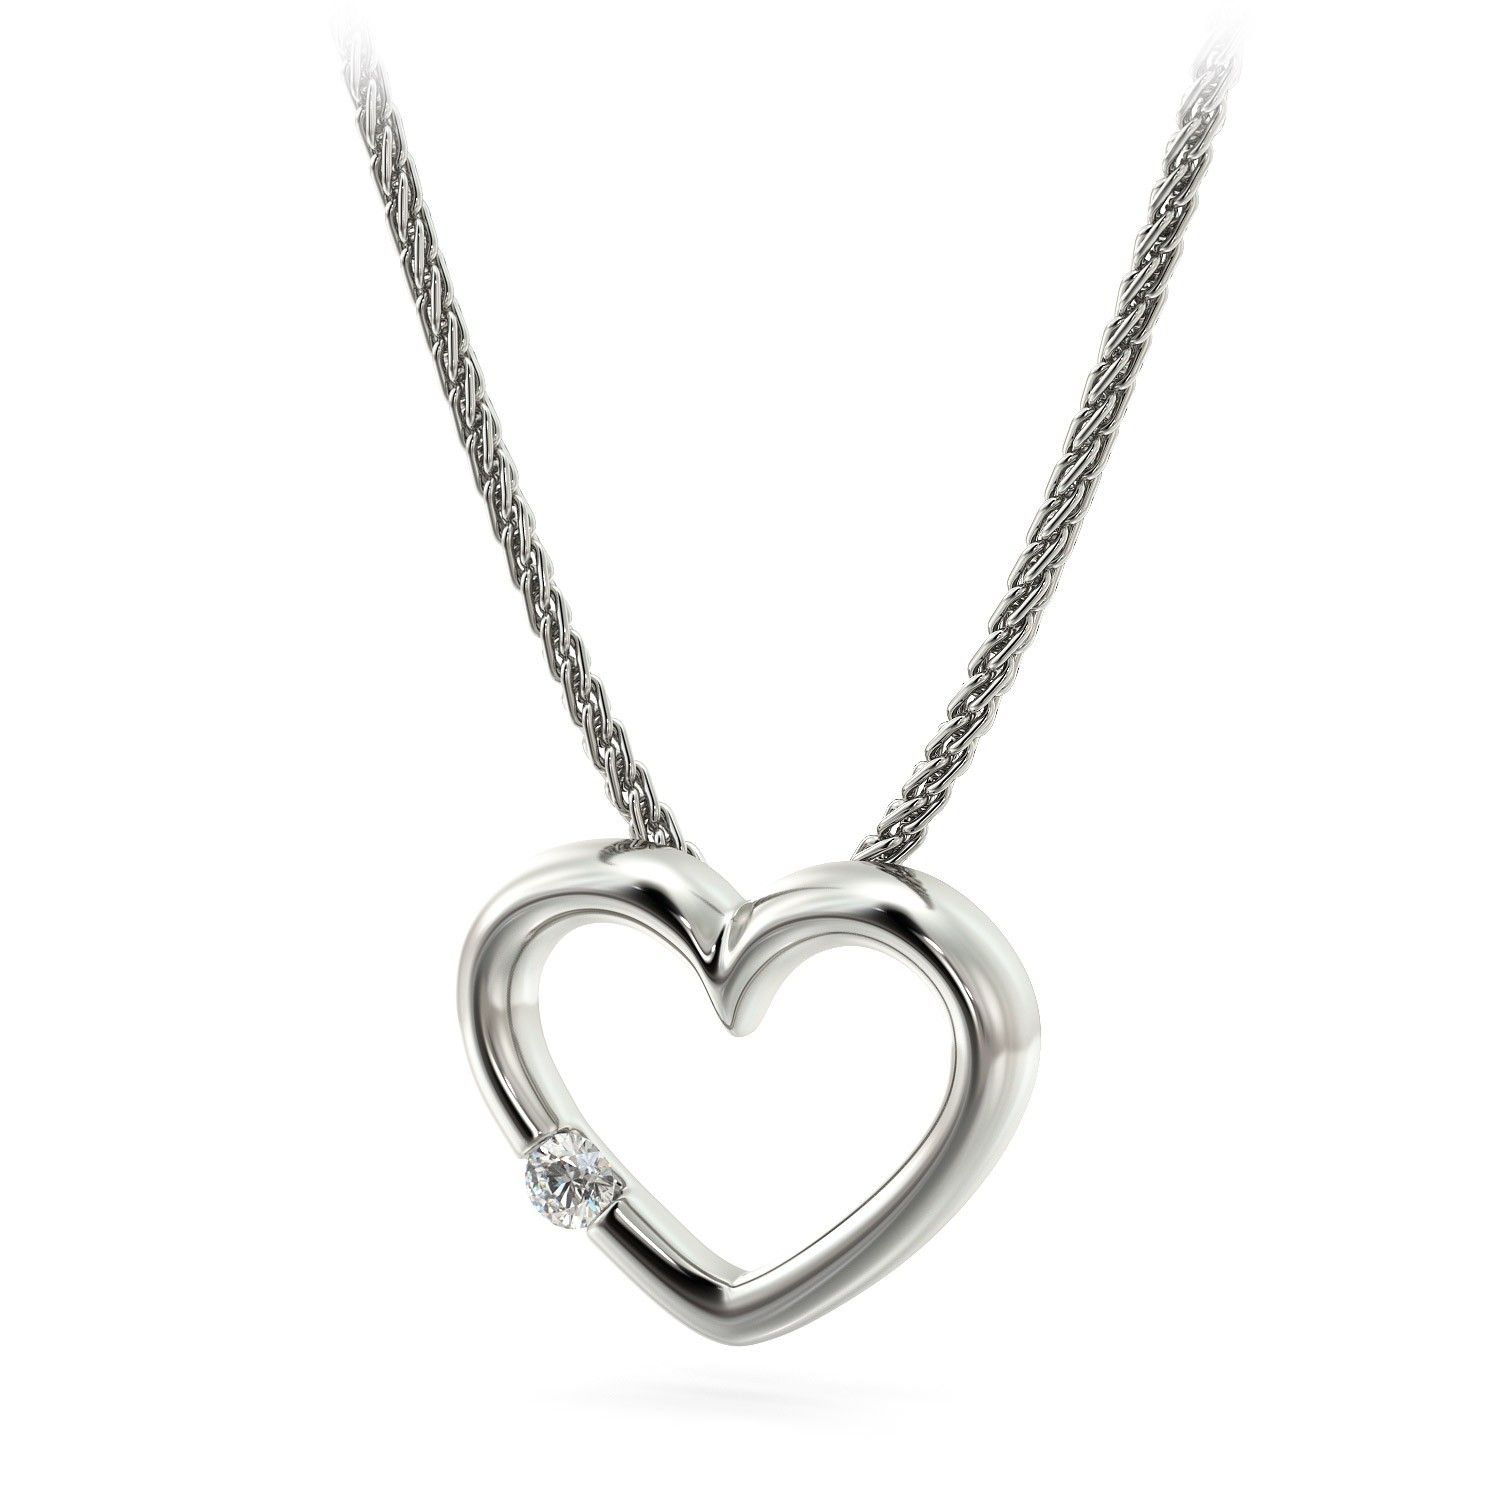 14kt White Gold and Diamond heart shaped pendant Visit our